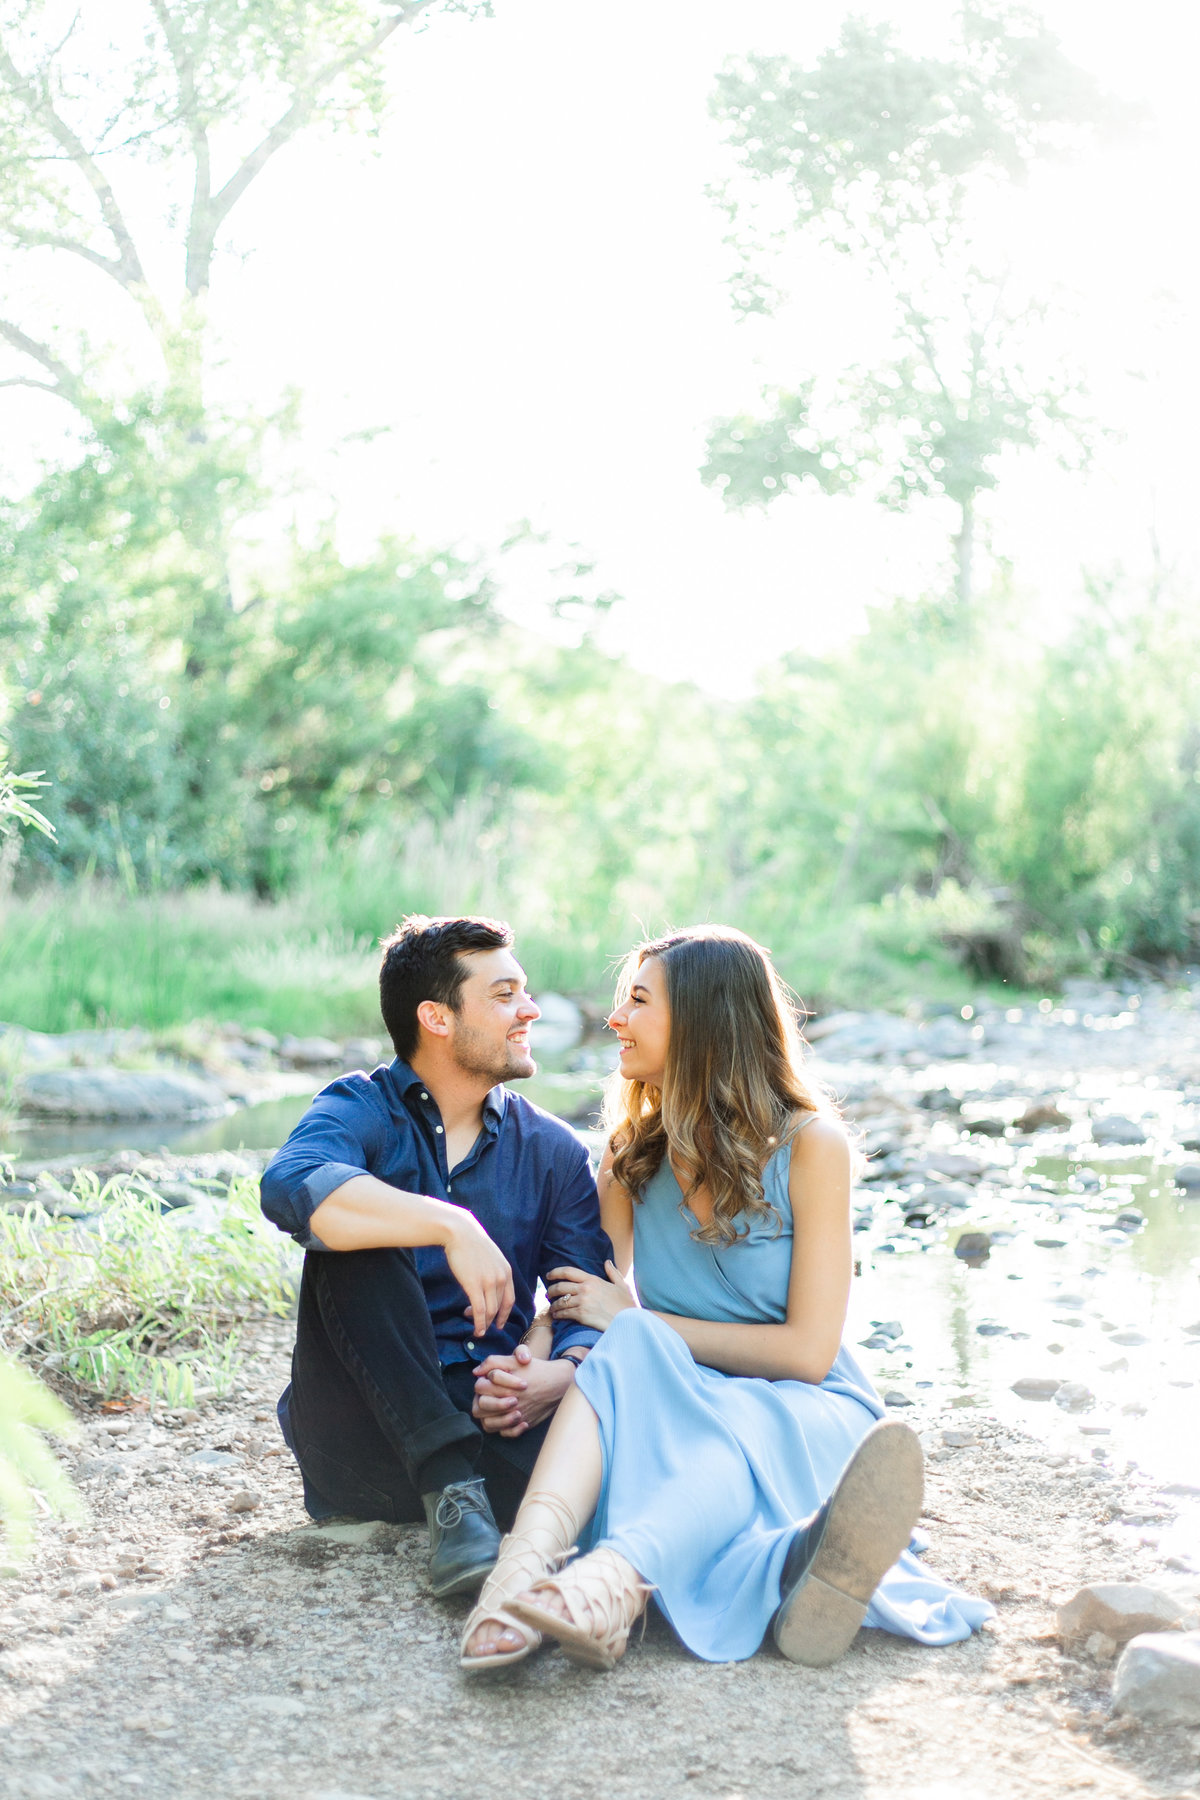 Karlie Colleen Photography - Arizona Desert Engagement - Brynne & Josh -71